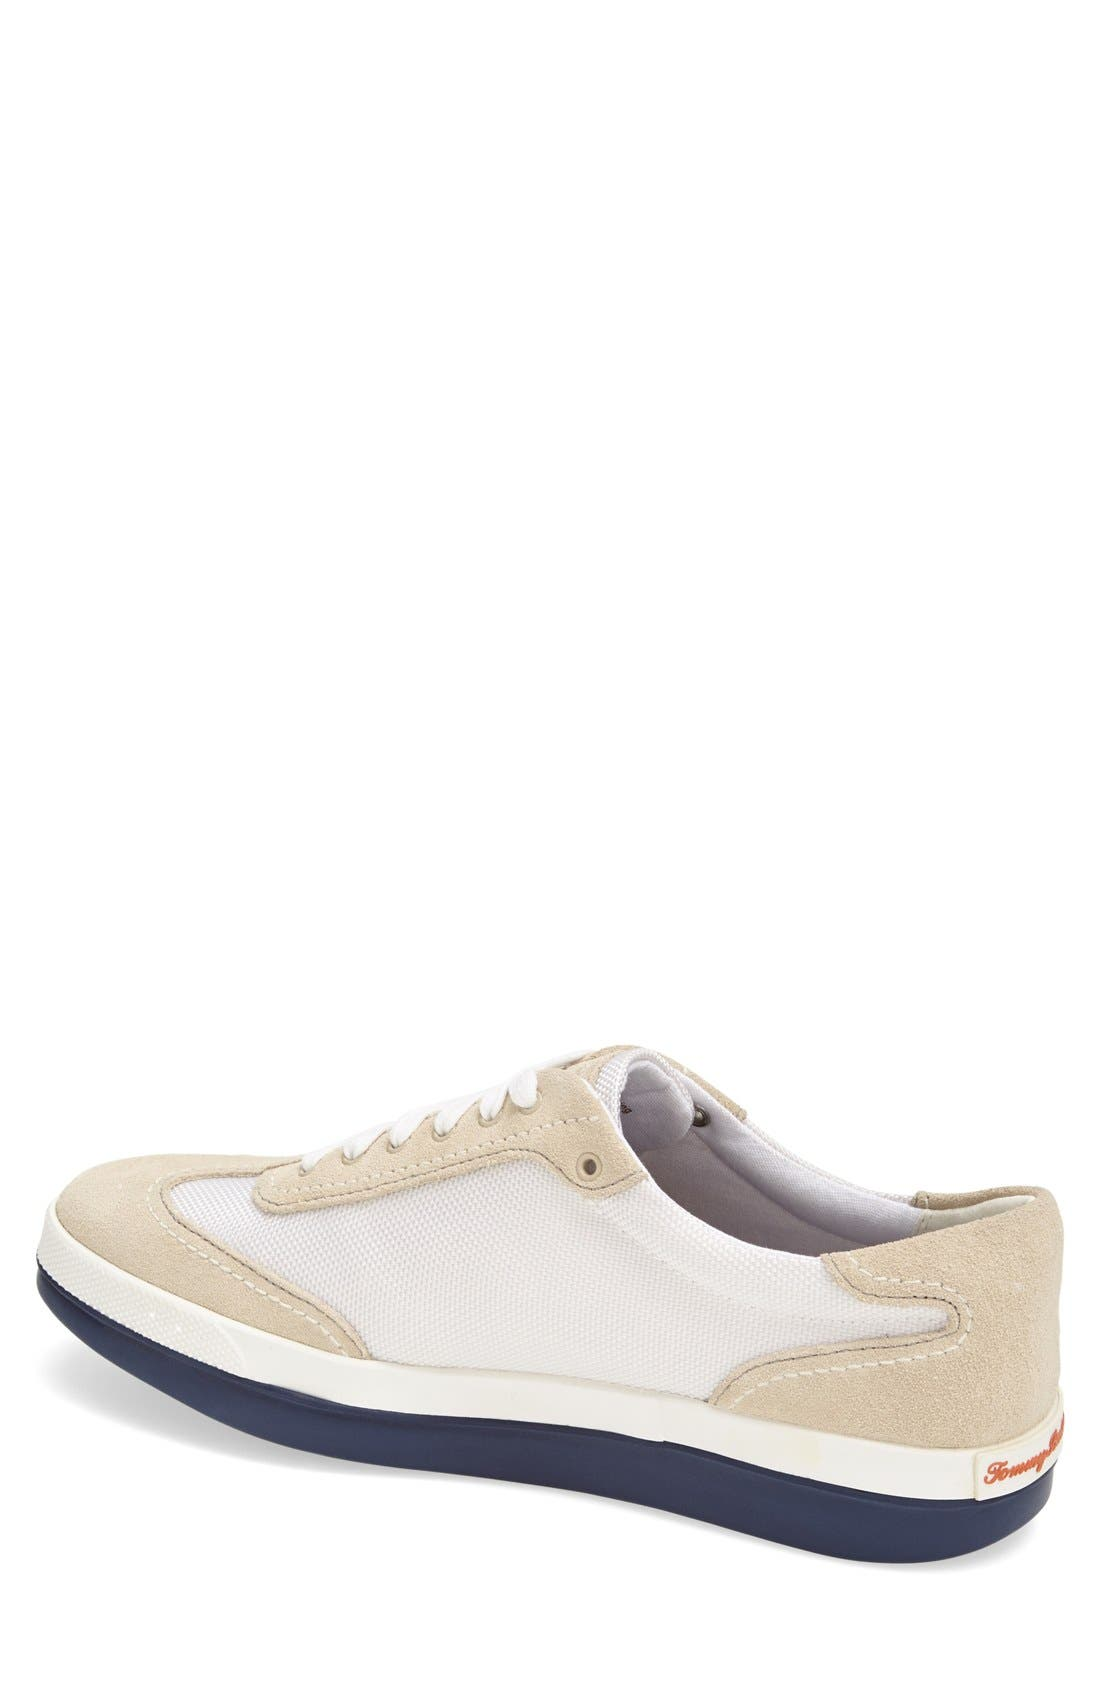 TOMMY BAHAMA,                             'Relaxology Collection - Roaderick' Sneaker,                             Alternate thumbnail 4, color,                             100